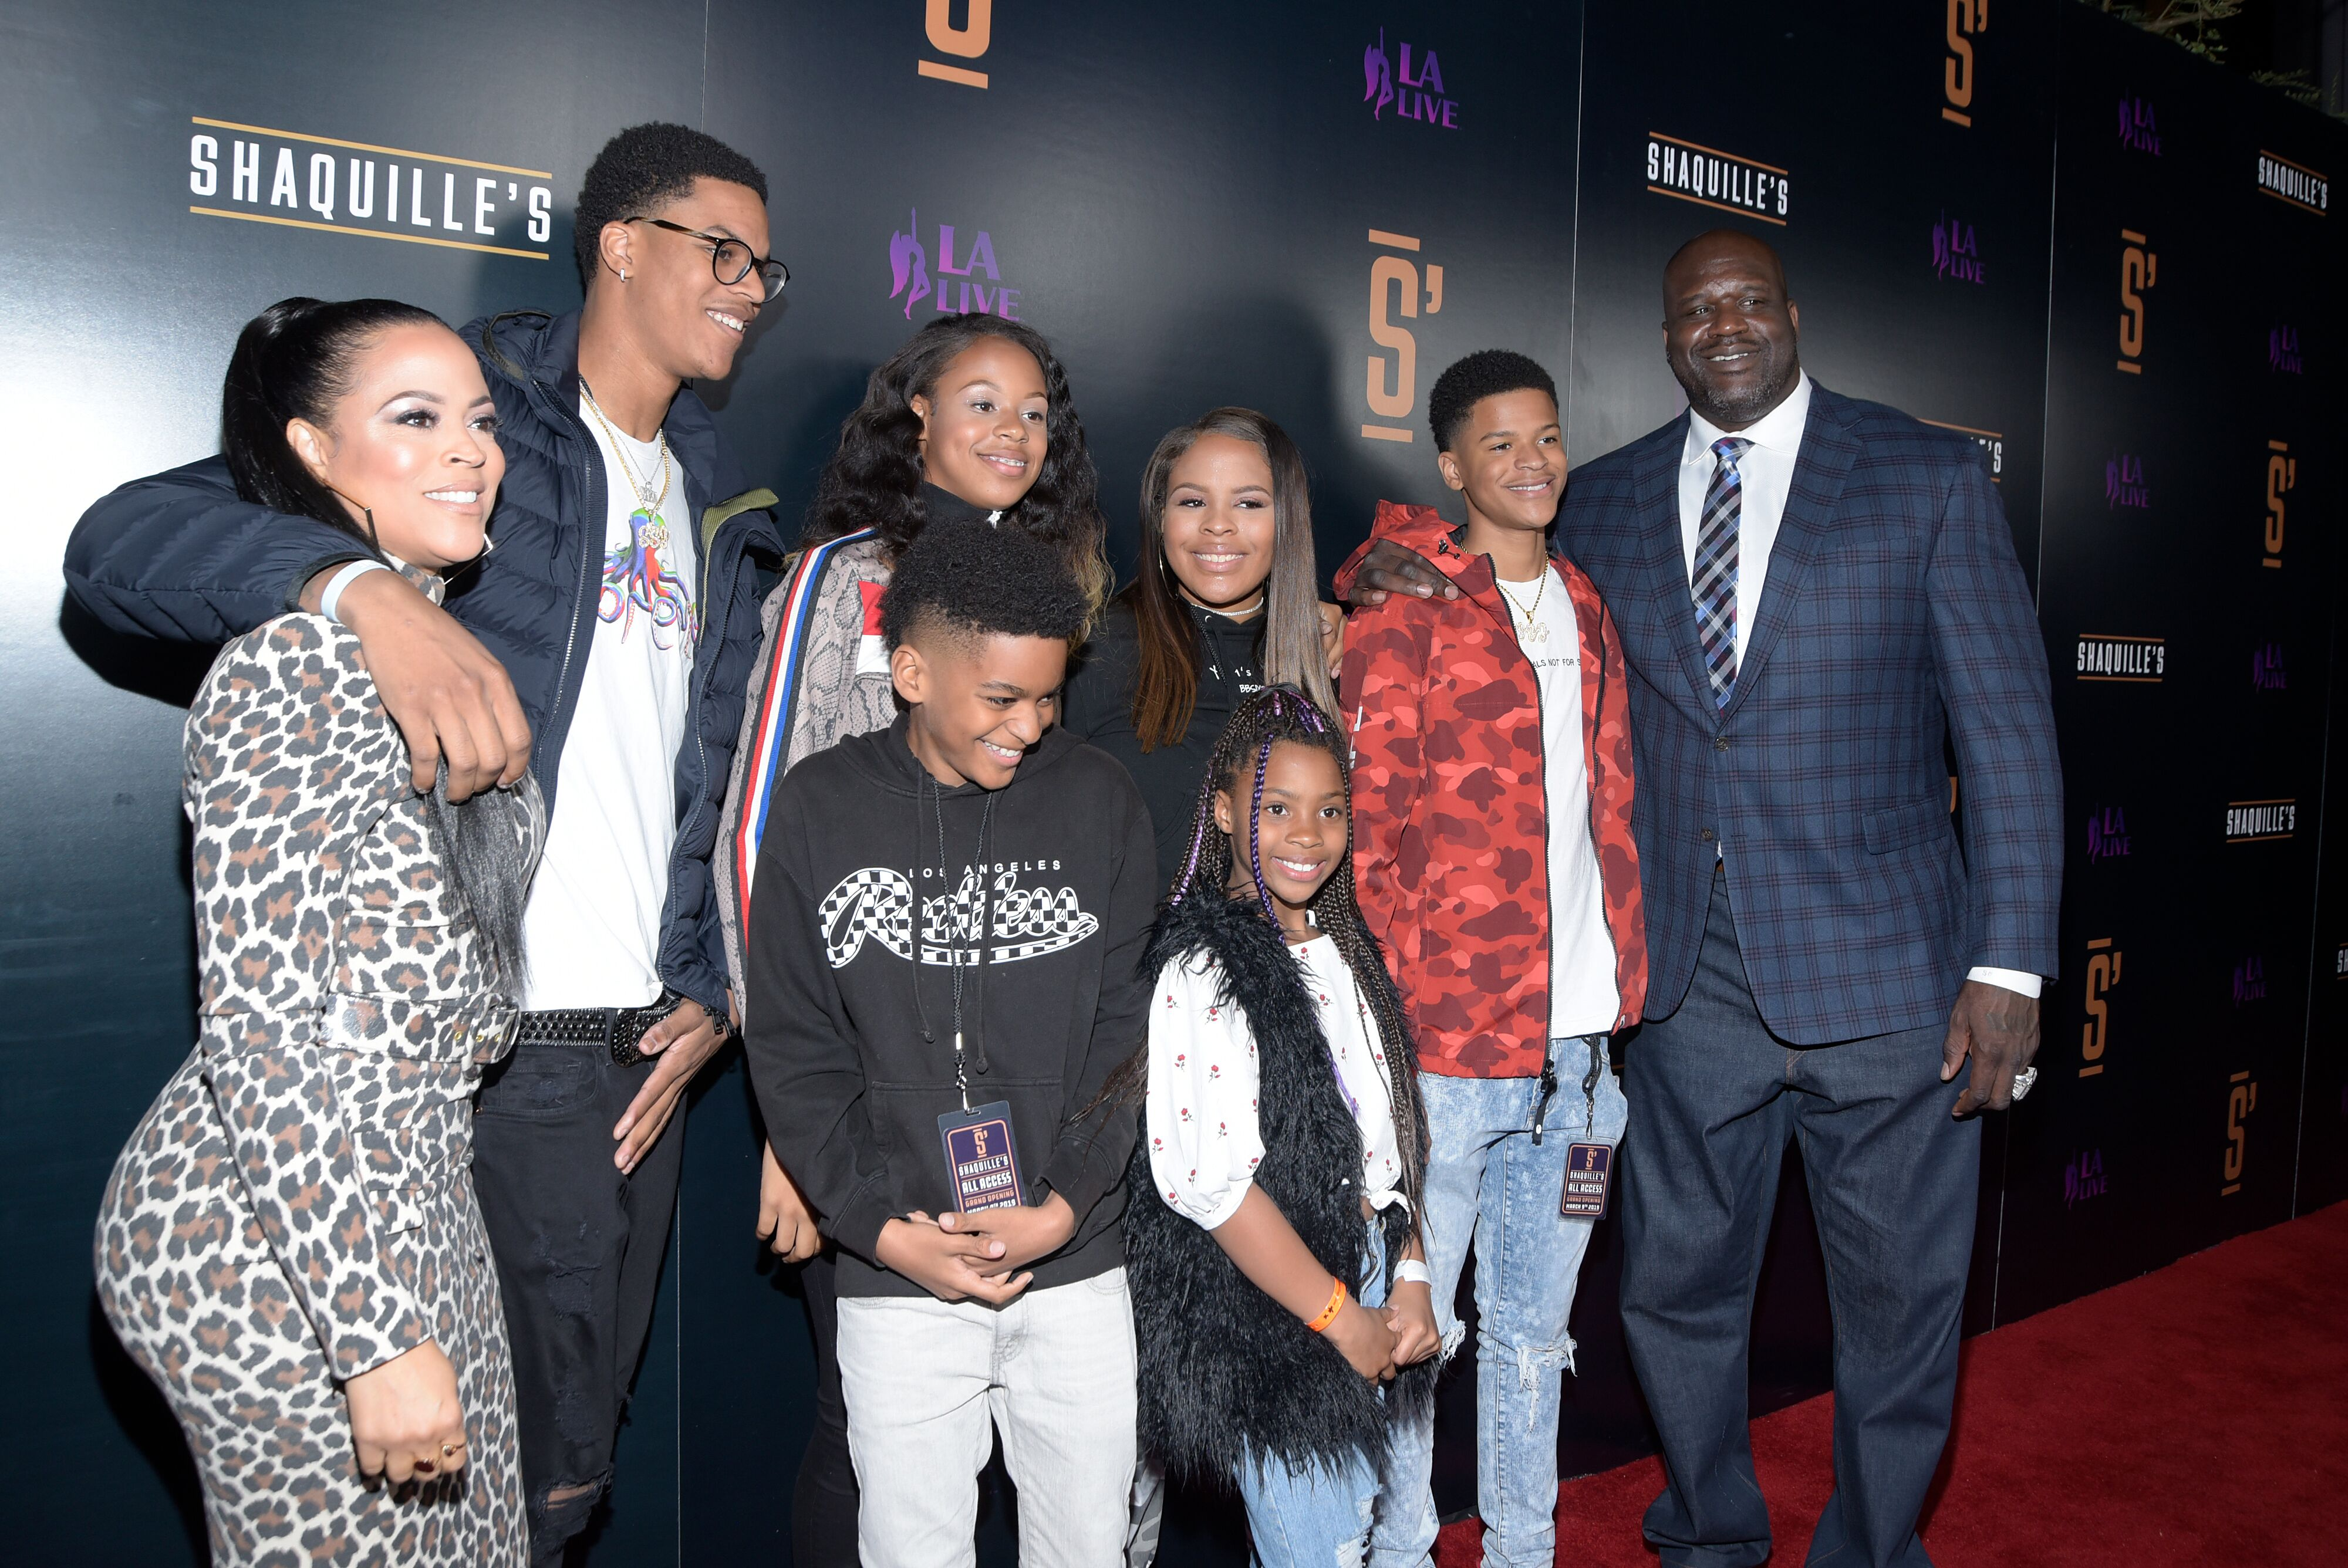 Shaquille and Shaunie O'Neal with their children at an event for their restaurant, Shaquille's | Source: Getty Images/GlobalImagesUkraine